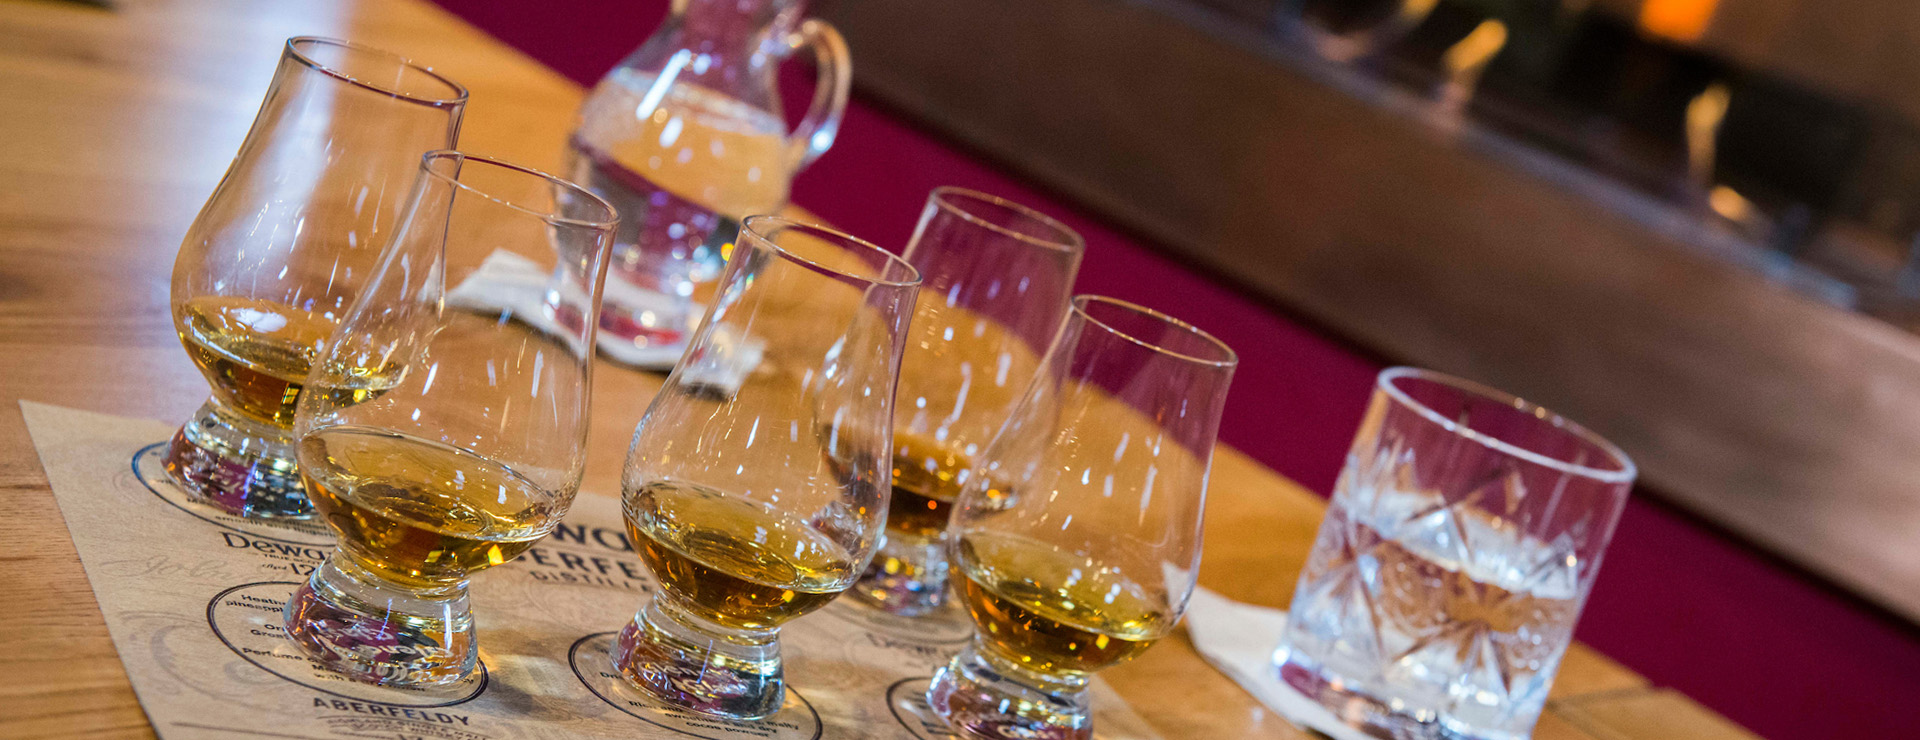 Private whisky tastings at Dewar's Aberfeldy Distillery